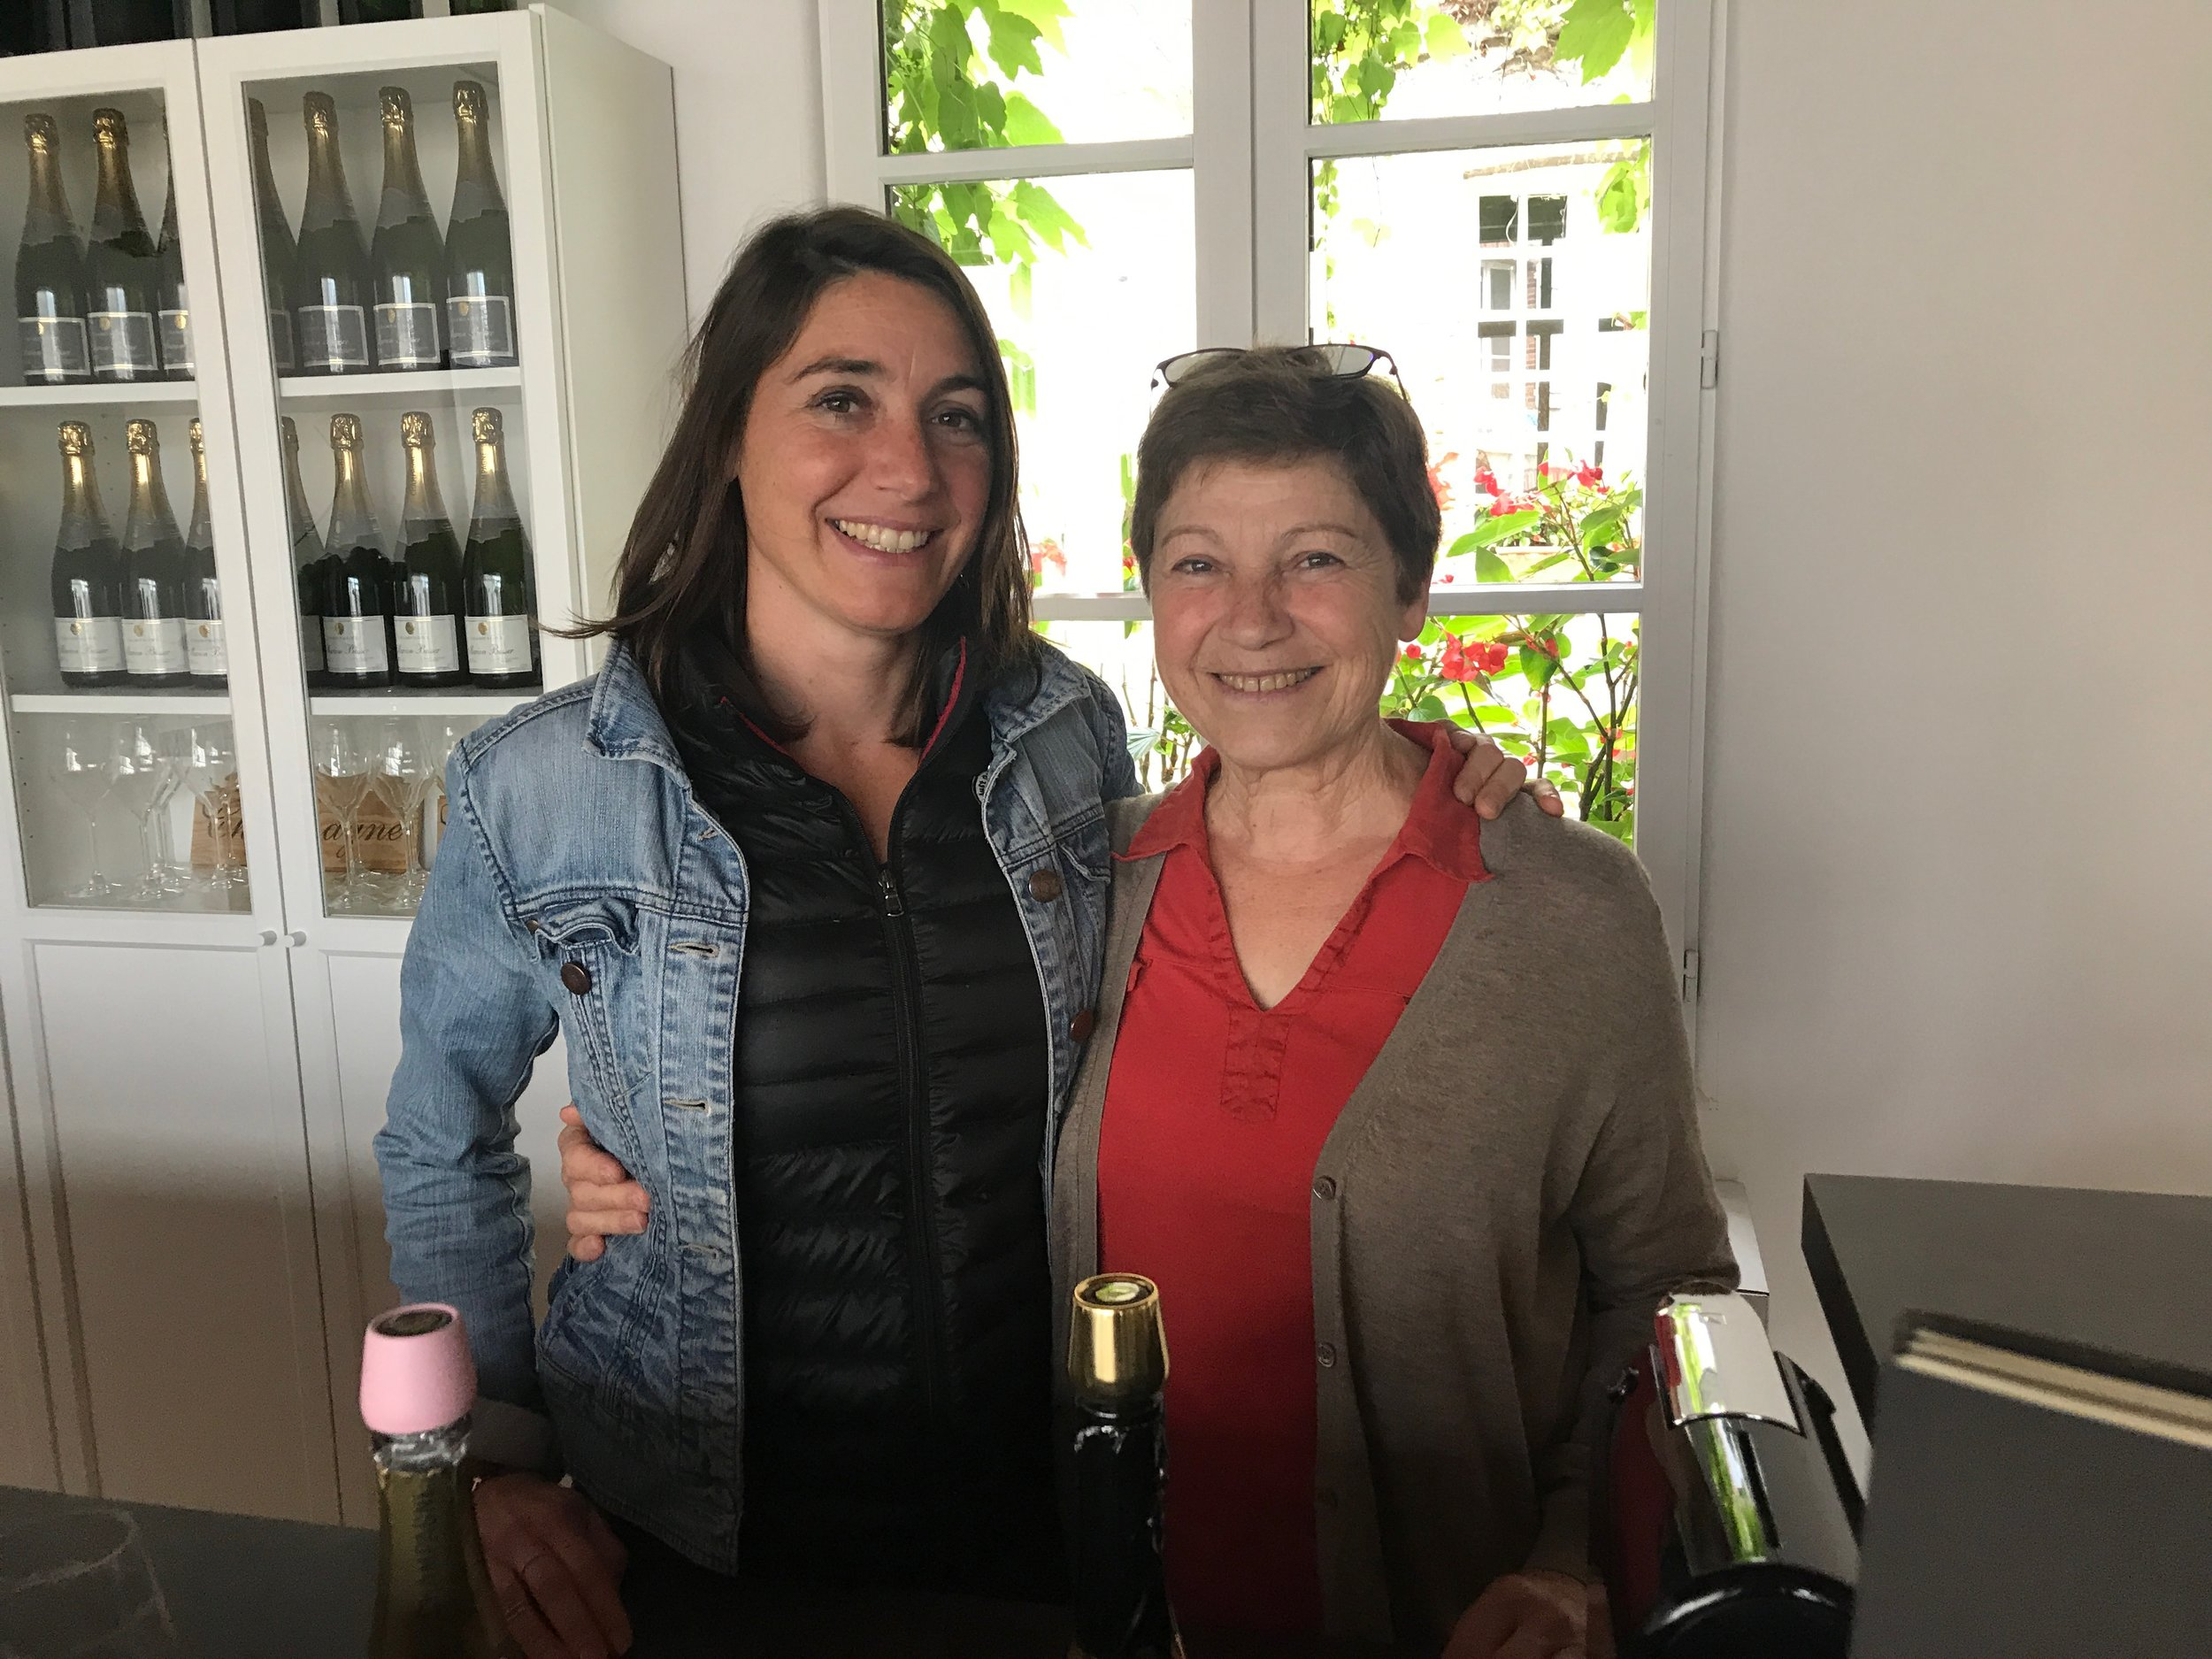 Elodie and her mom Bernadette, in their tasting room in Hautvillers